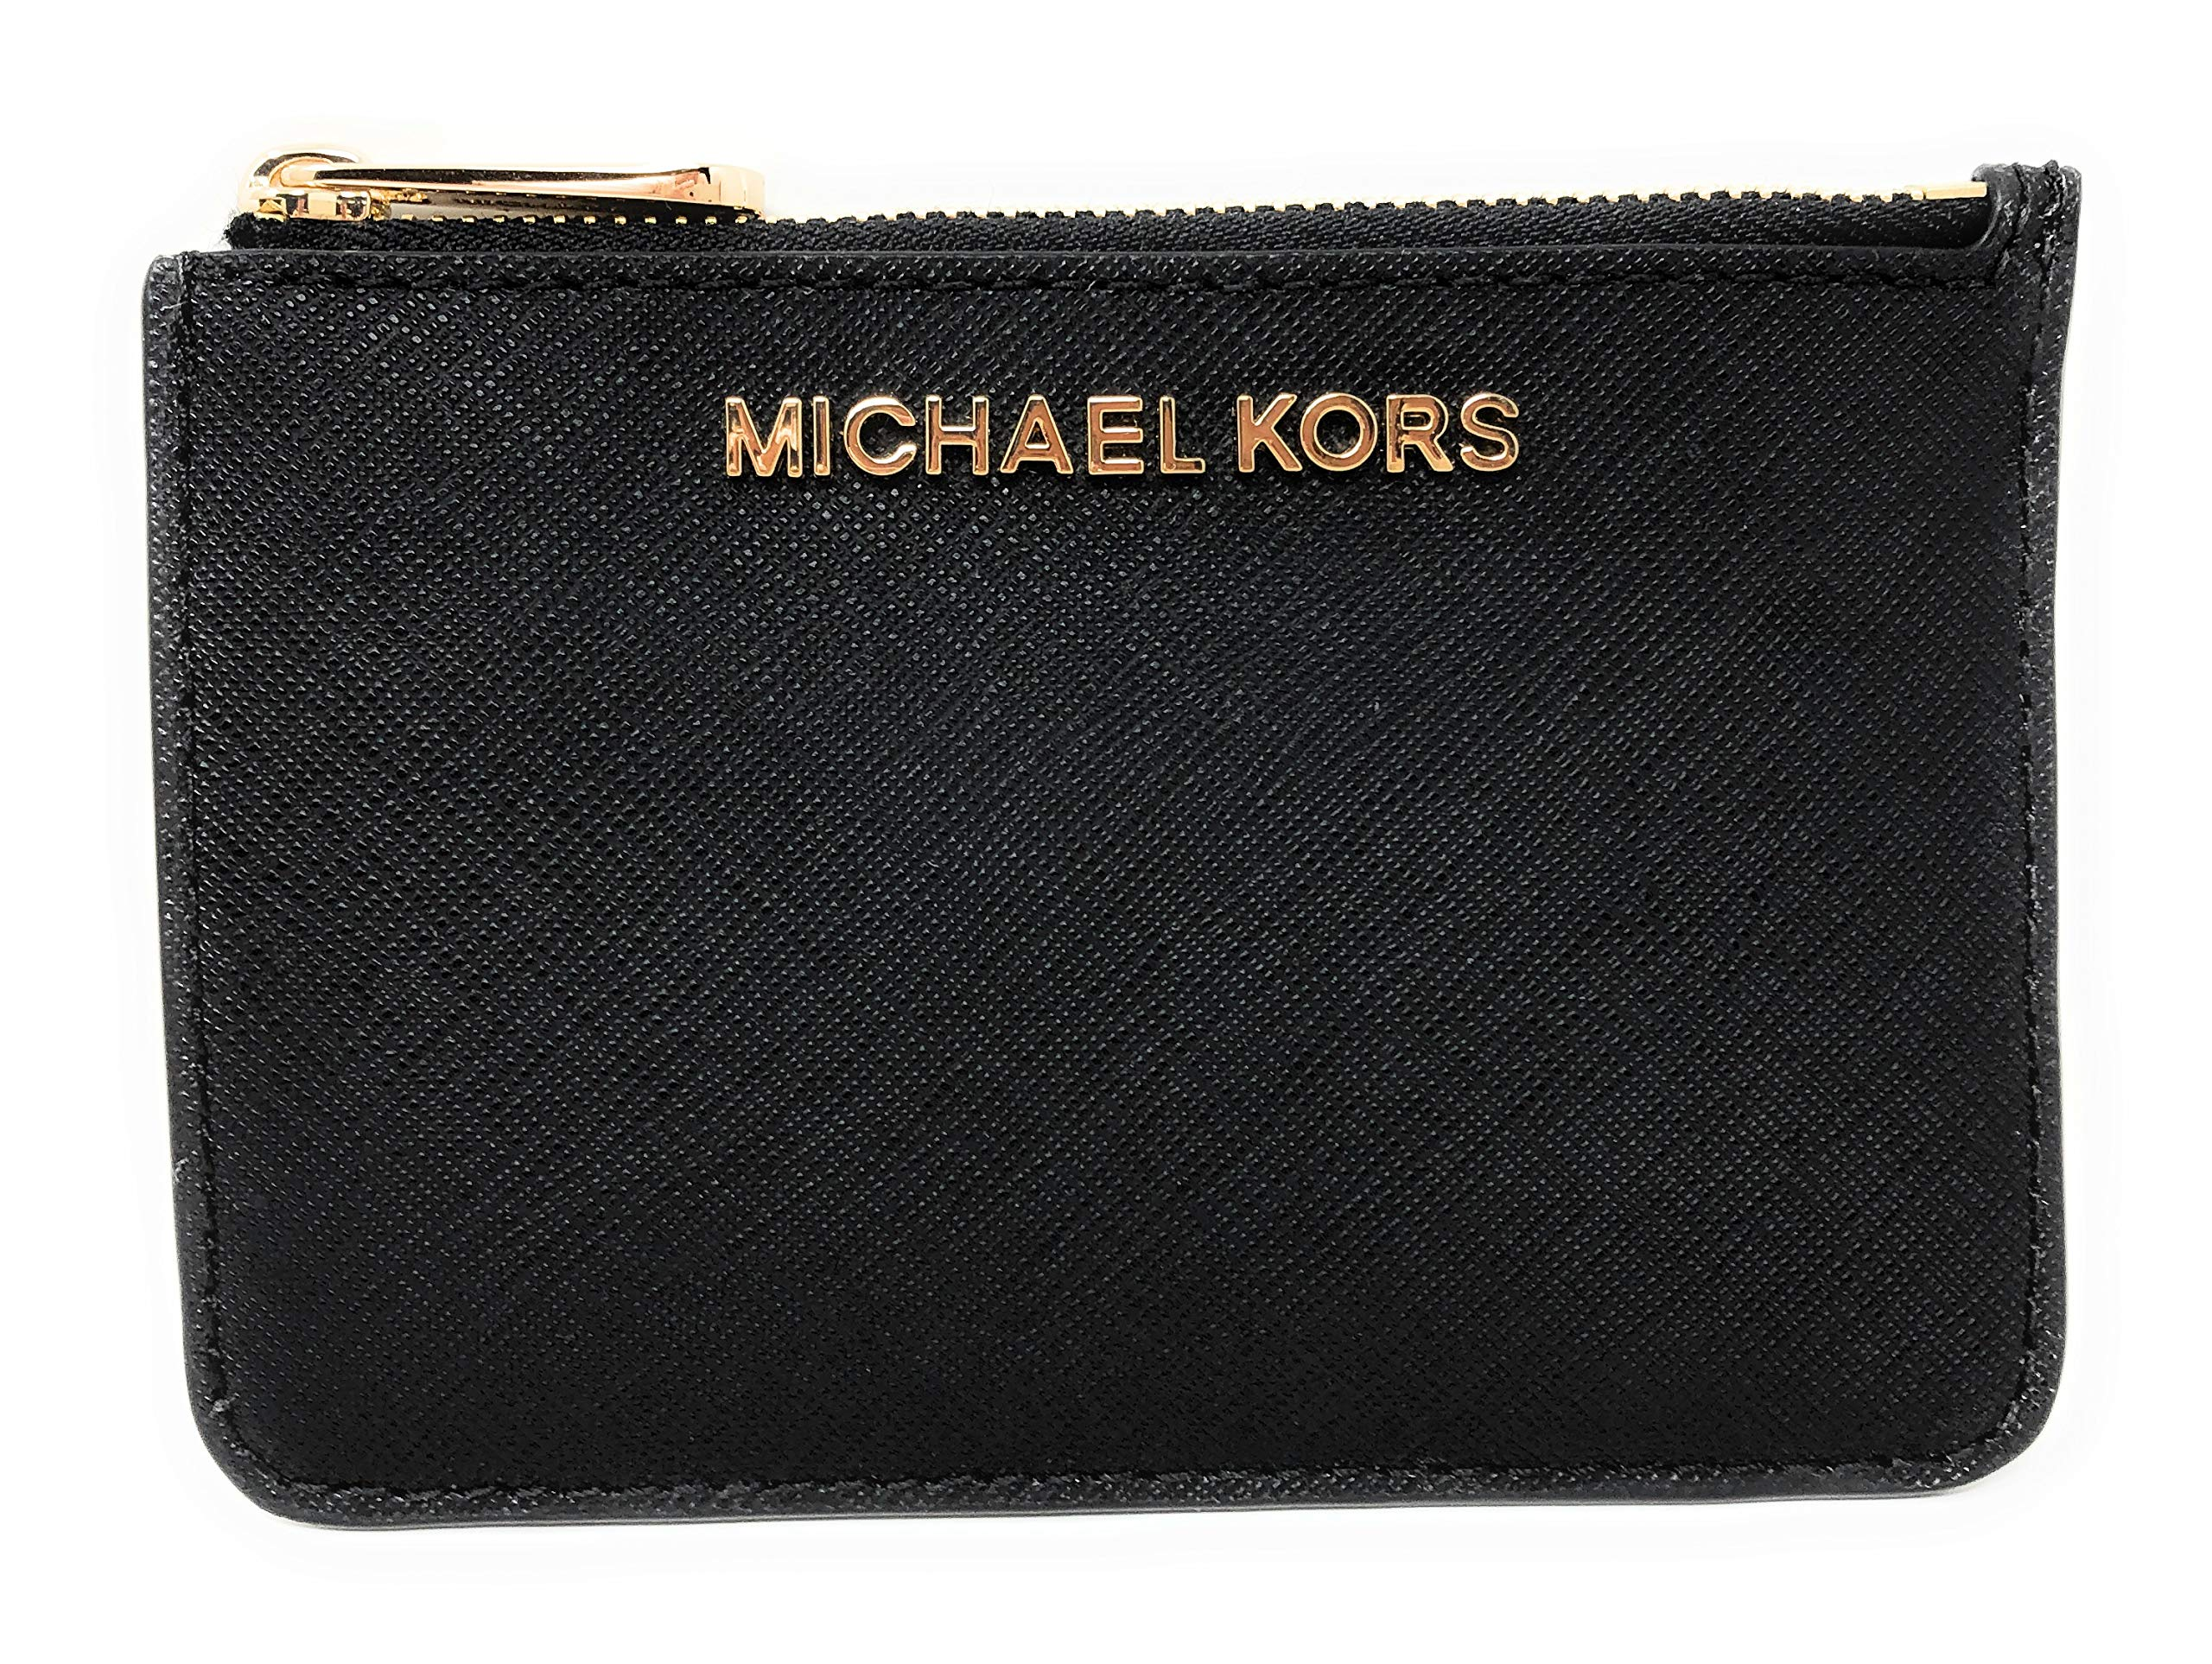 Michael Kors Jet Set Travel Small Top Zip Coin Pouch with ID Holder in Saffiano Leather (Black with Gold Hardware)